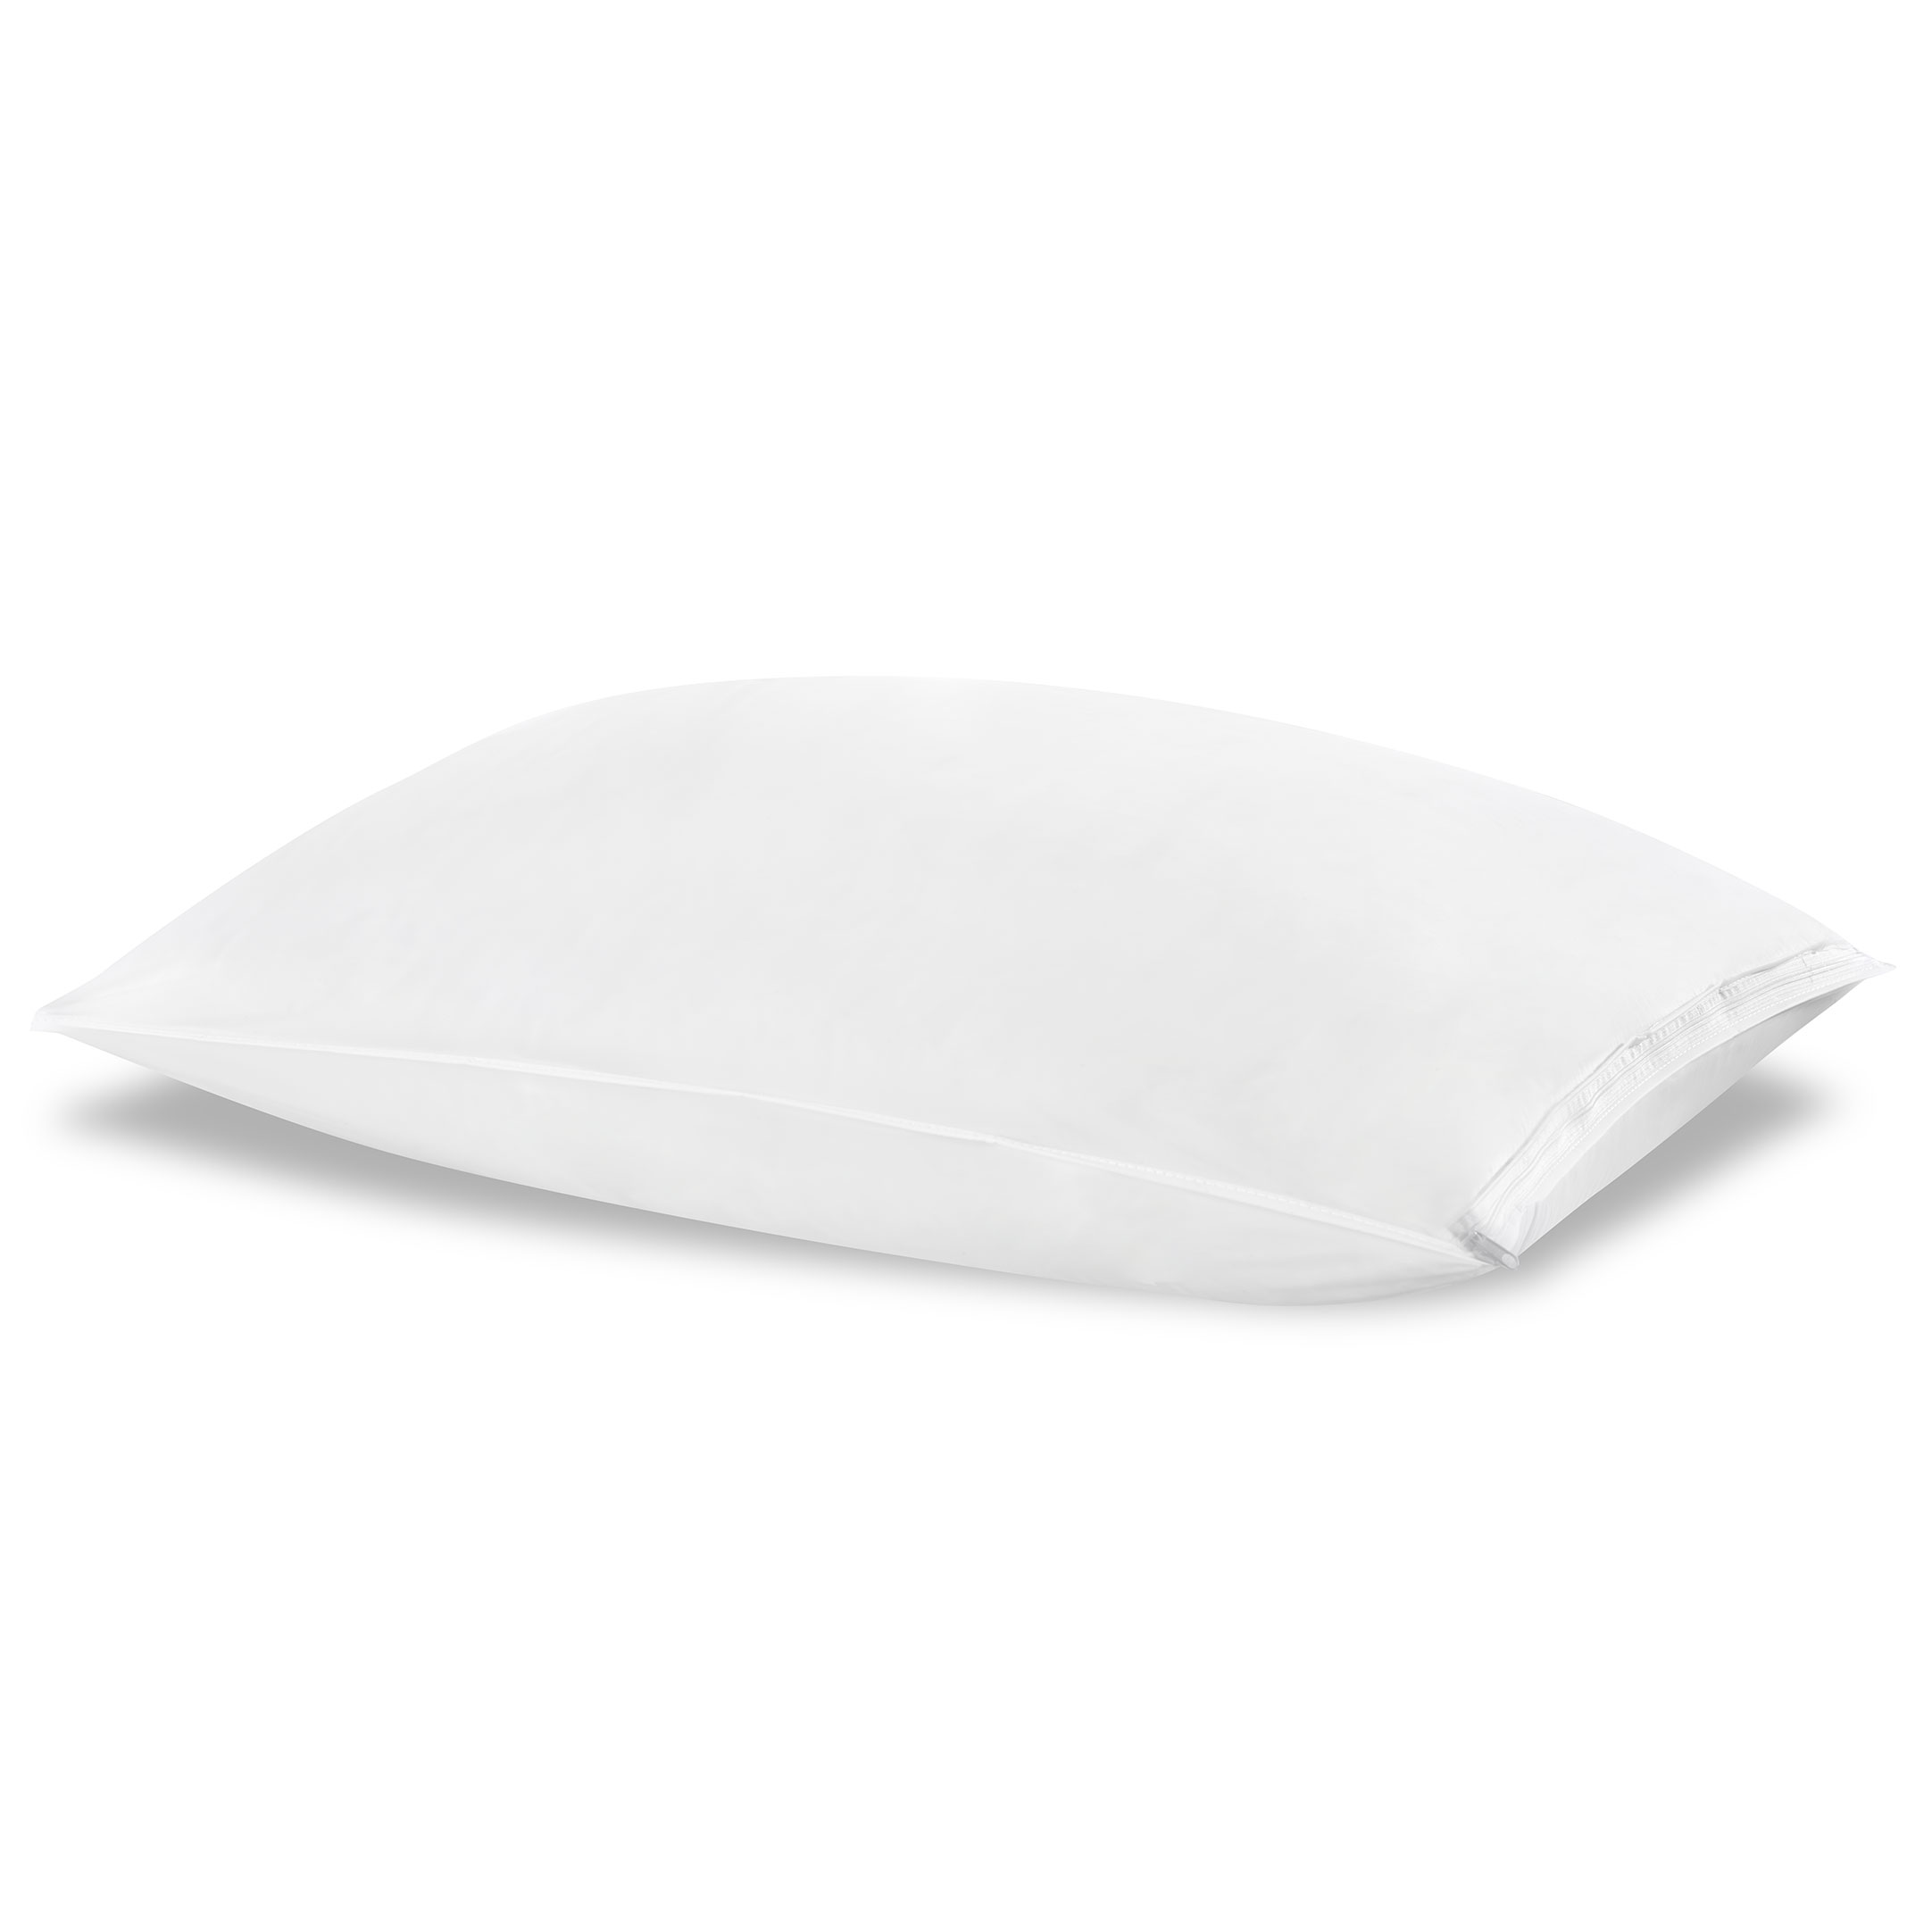 of pin protectors dunelm fogarty pillow touch pair soft